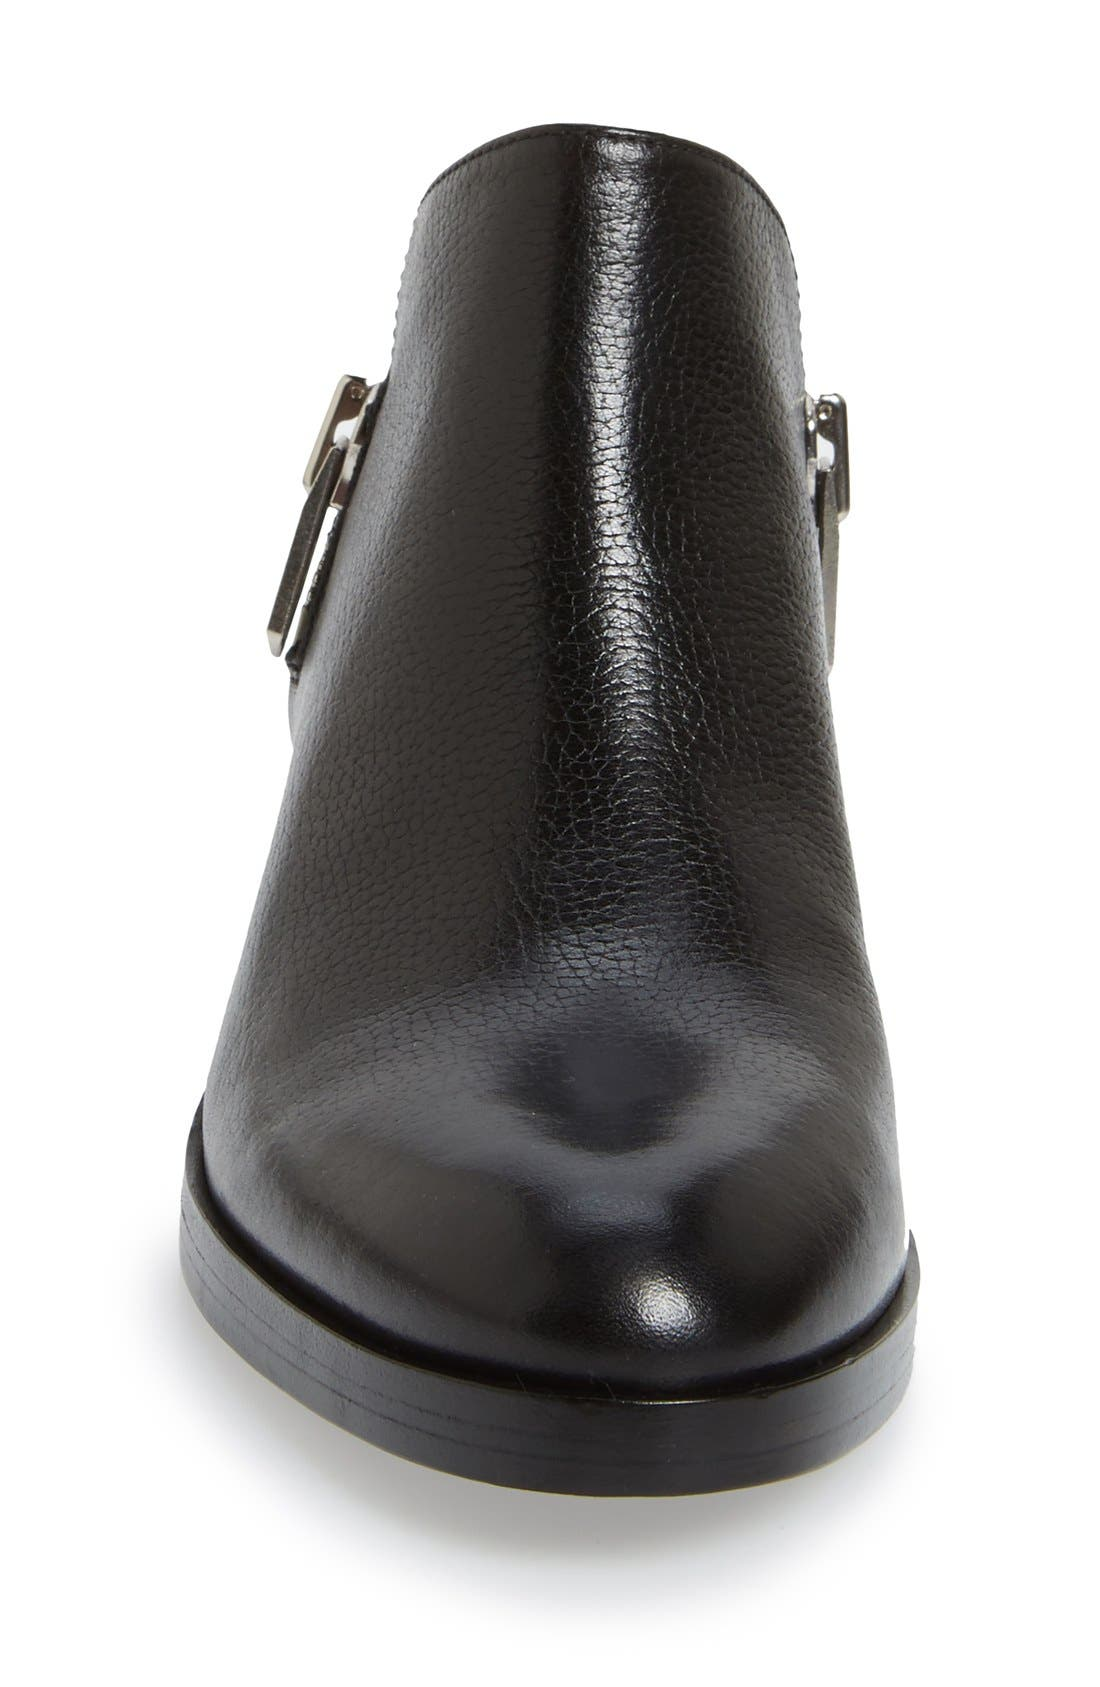 Alternate Image 3  - 3.1 Phillip Lim Alexa Zip Ankle Bootie (Women)